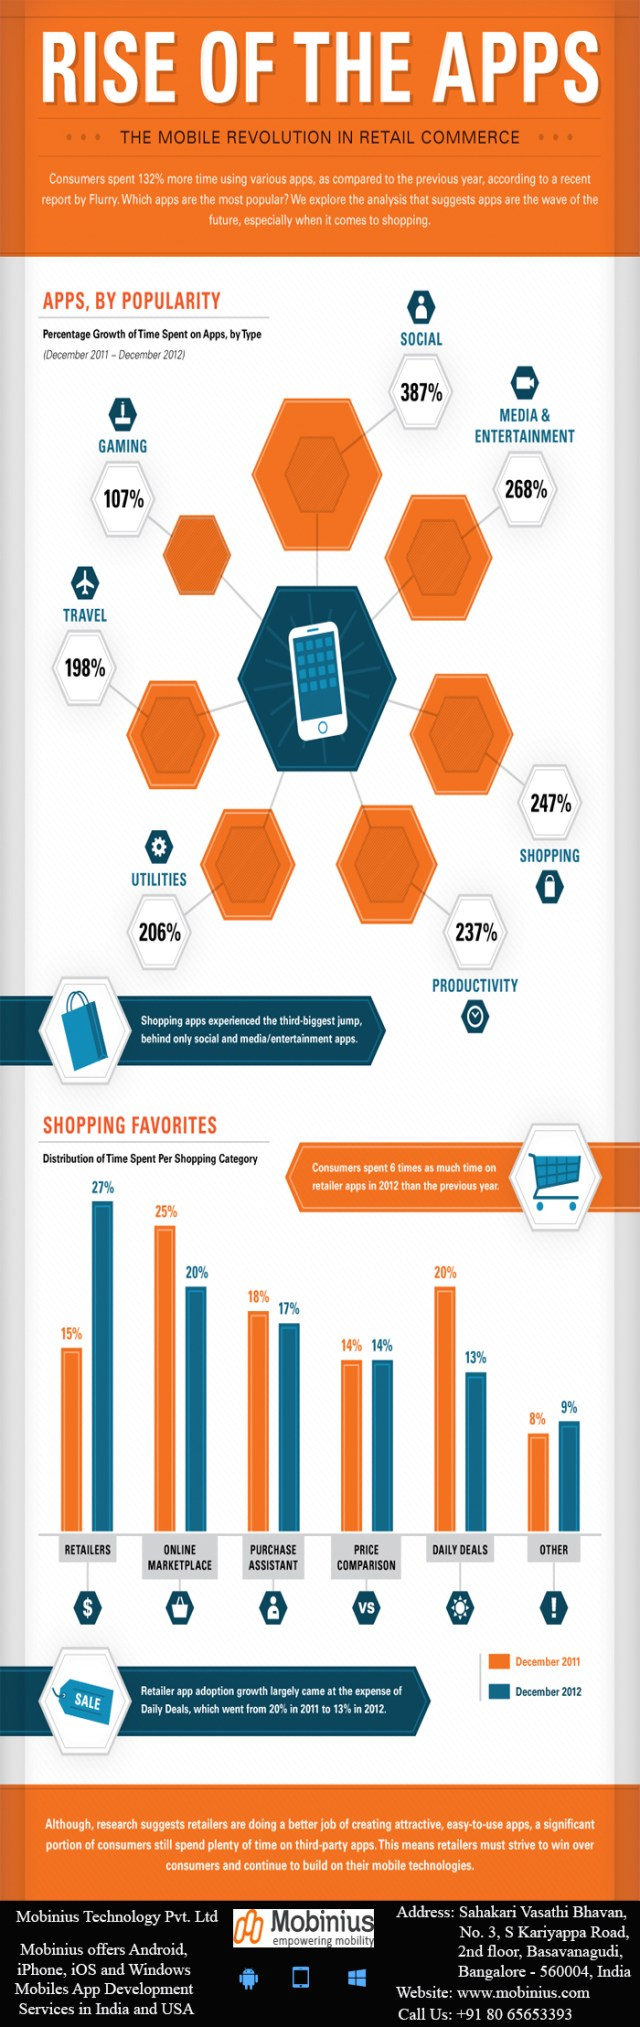 rise-of-the-apps-the-mobile-revalution-in-retail-commerce_5730a72d9b436